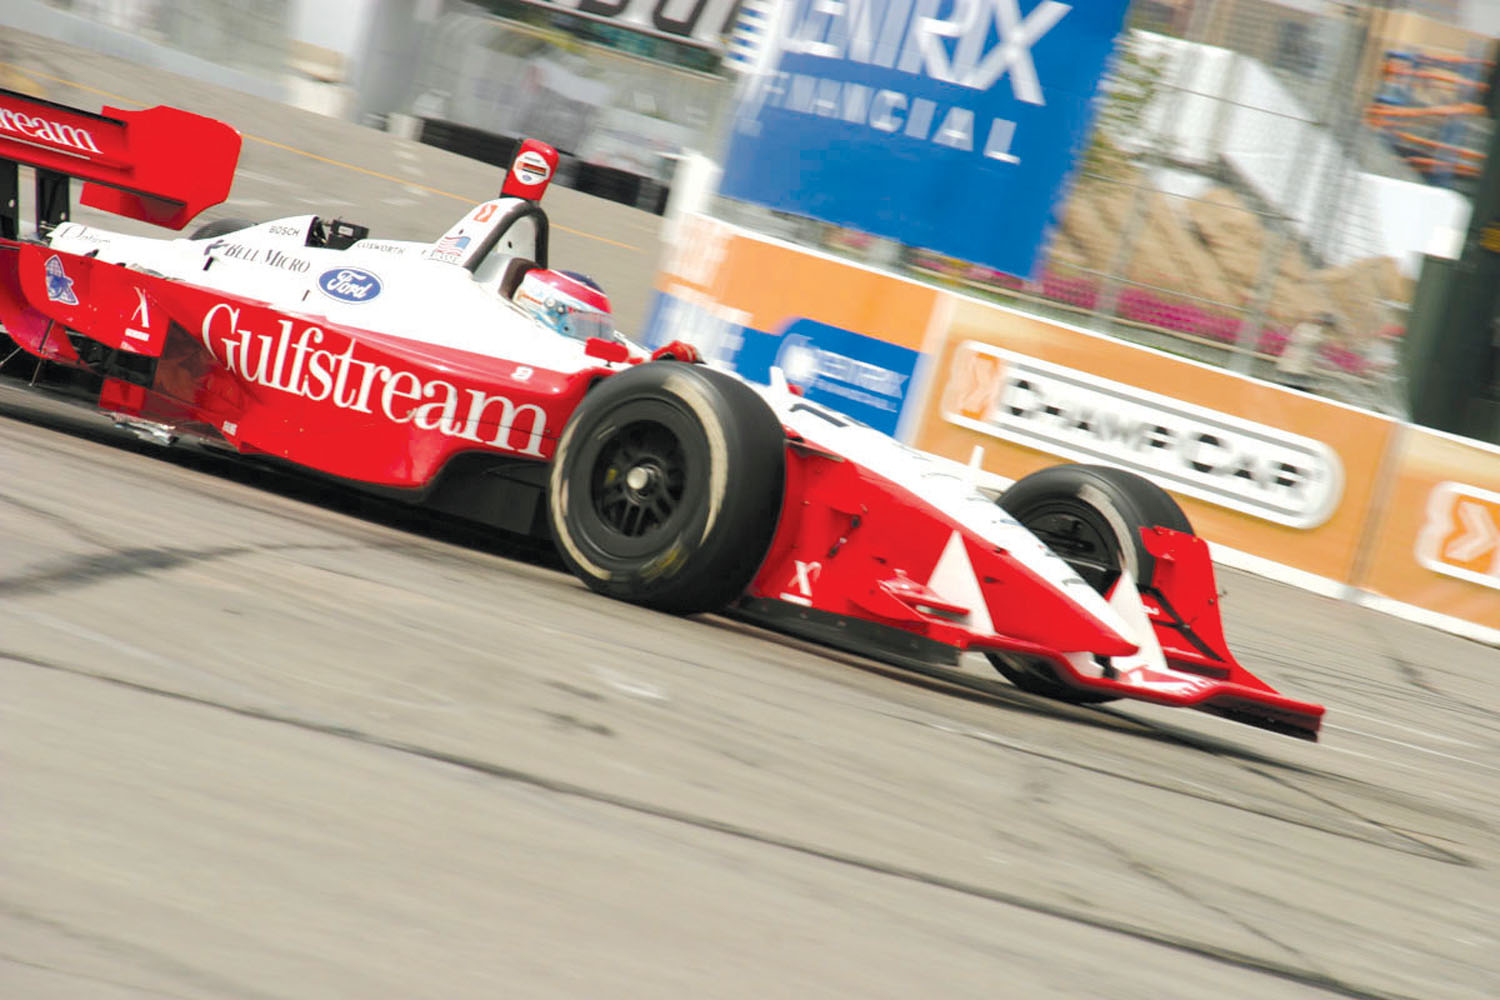 Open Wheel Auto Racing and Flat Out Flying—What a Drug